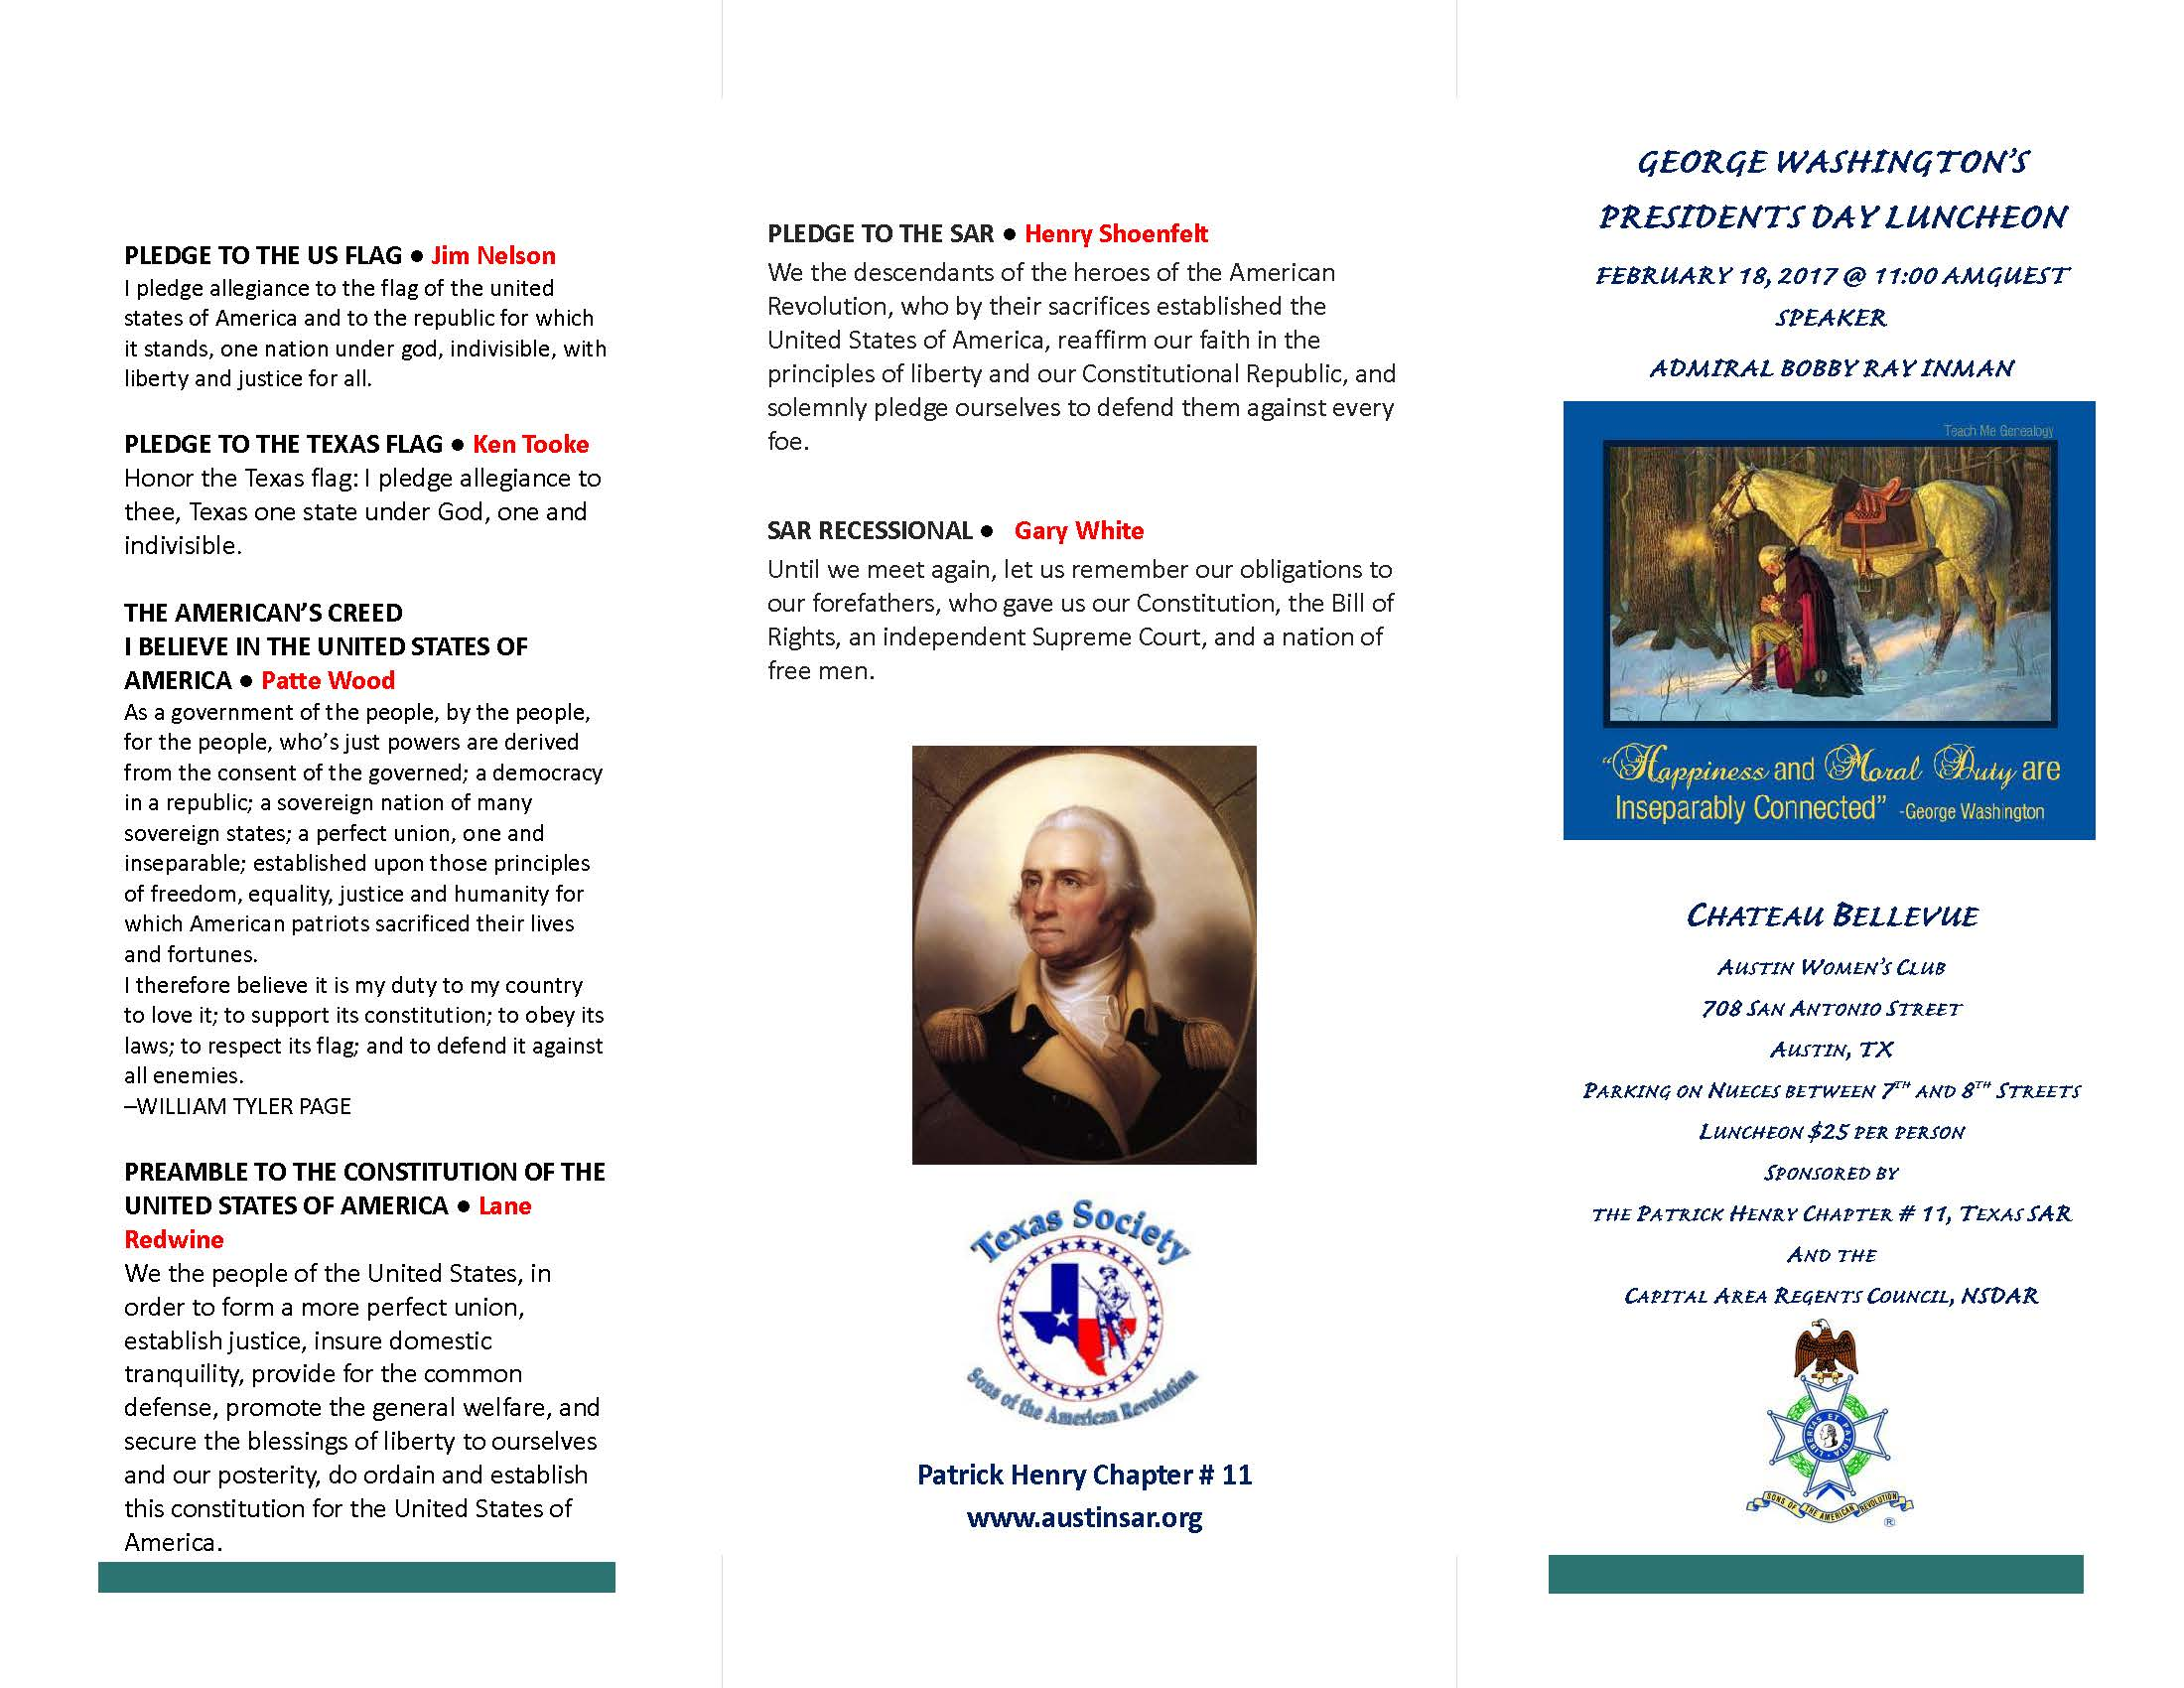 2017 George Washington Program Trifold 2 (3) (1)_Page_1